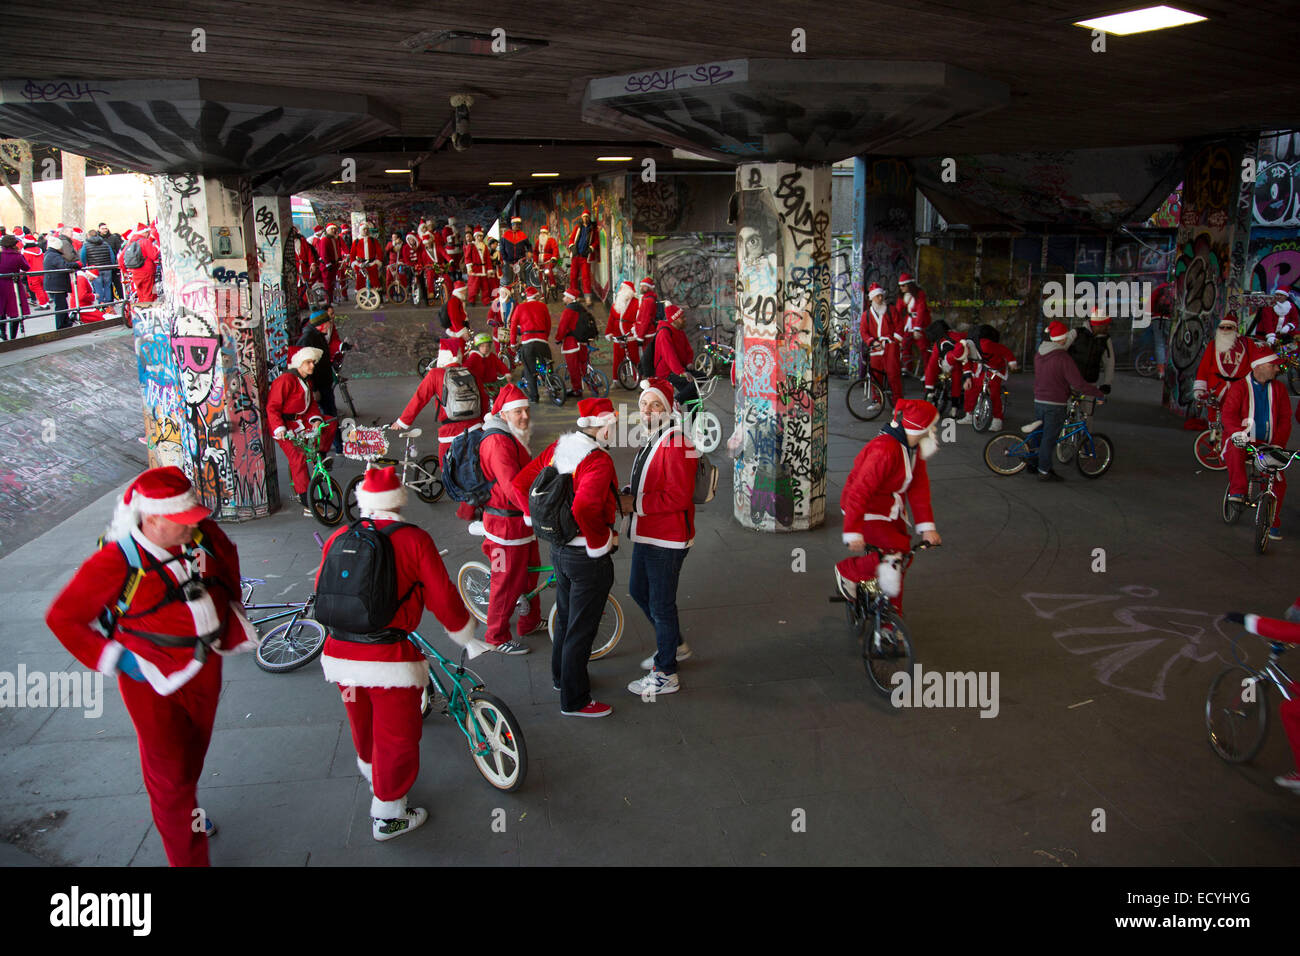 Santas of Old School BMX Life on the Santa Cruise charity day out. Undercroft, South Bank, London, UK. - Stock Image